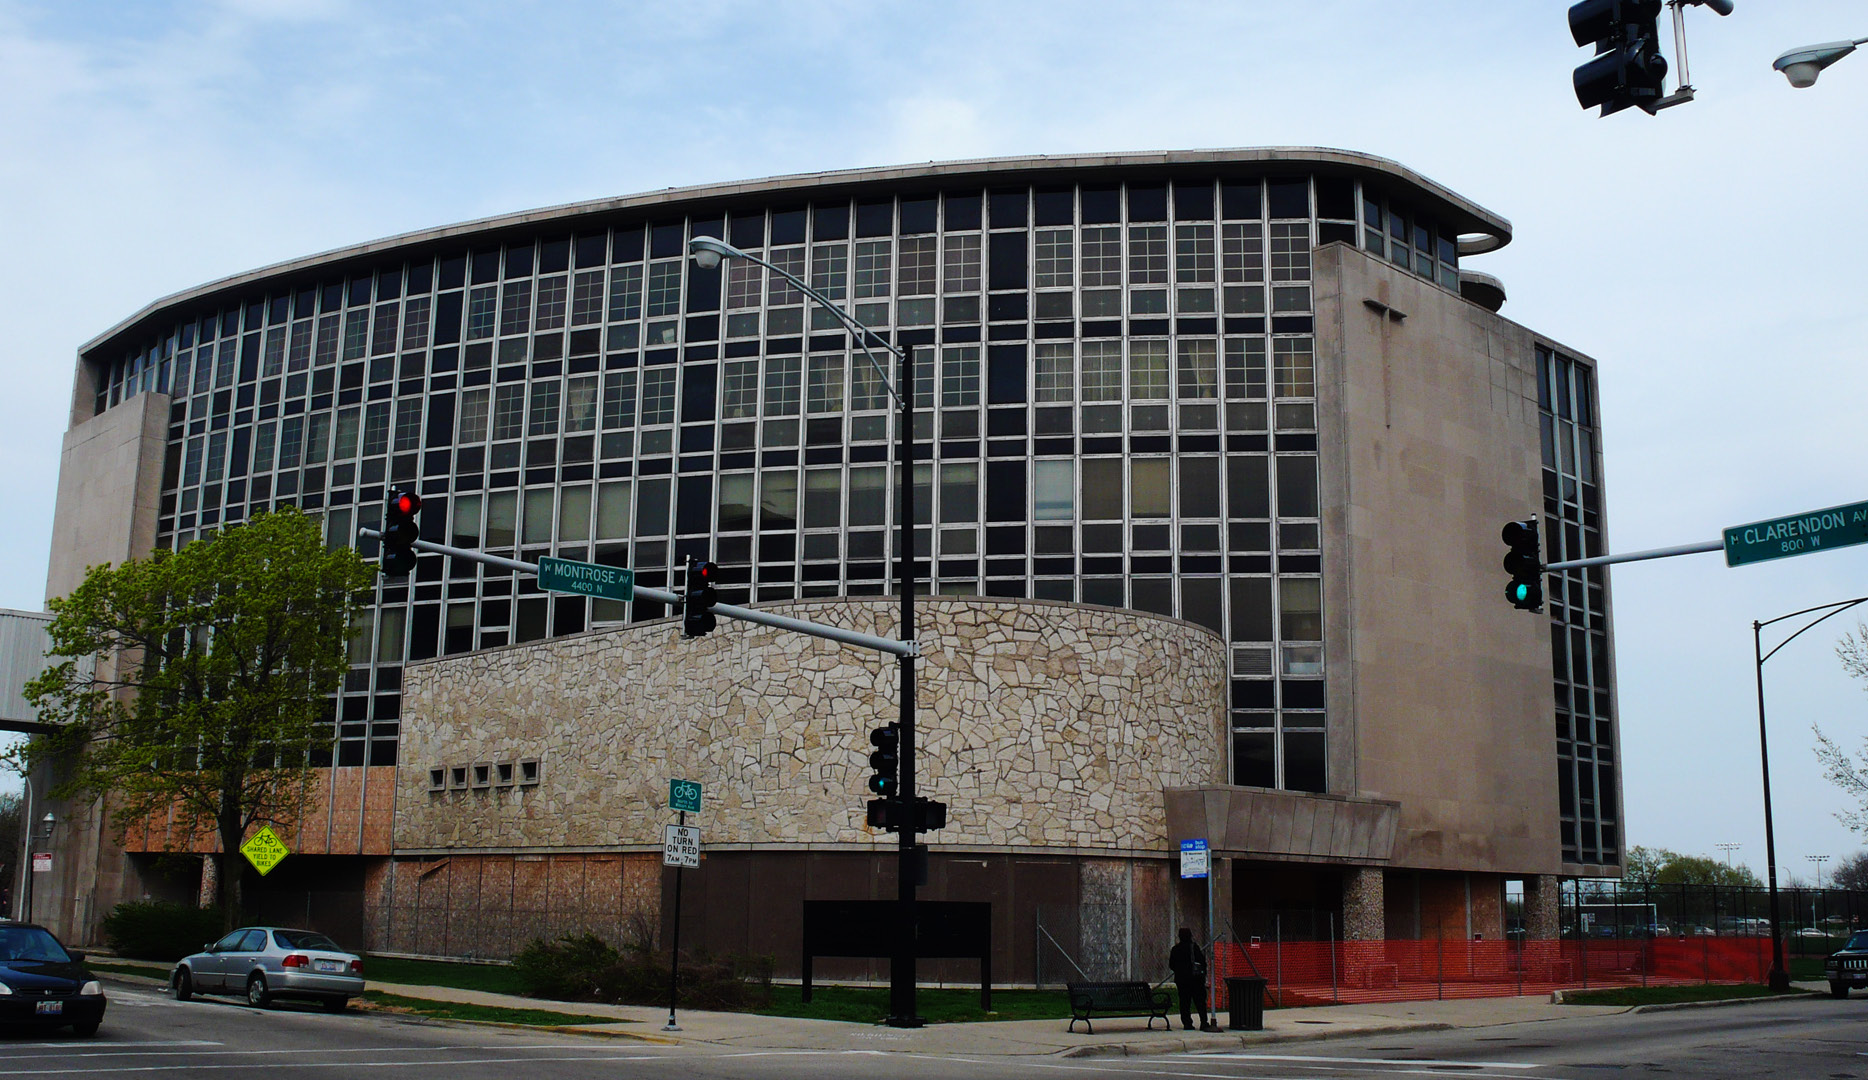 According to Preservation Chicago, Frank Cuneo Memorial Hospital was 'the most modern of hospitals' when it opened in 1957. Now it's on the group's list of endangered buildings. (Preservation Chicago/Stacey Pfingsten)